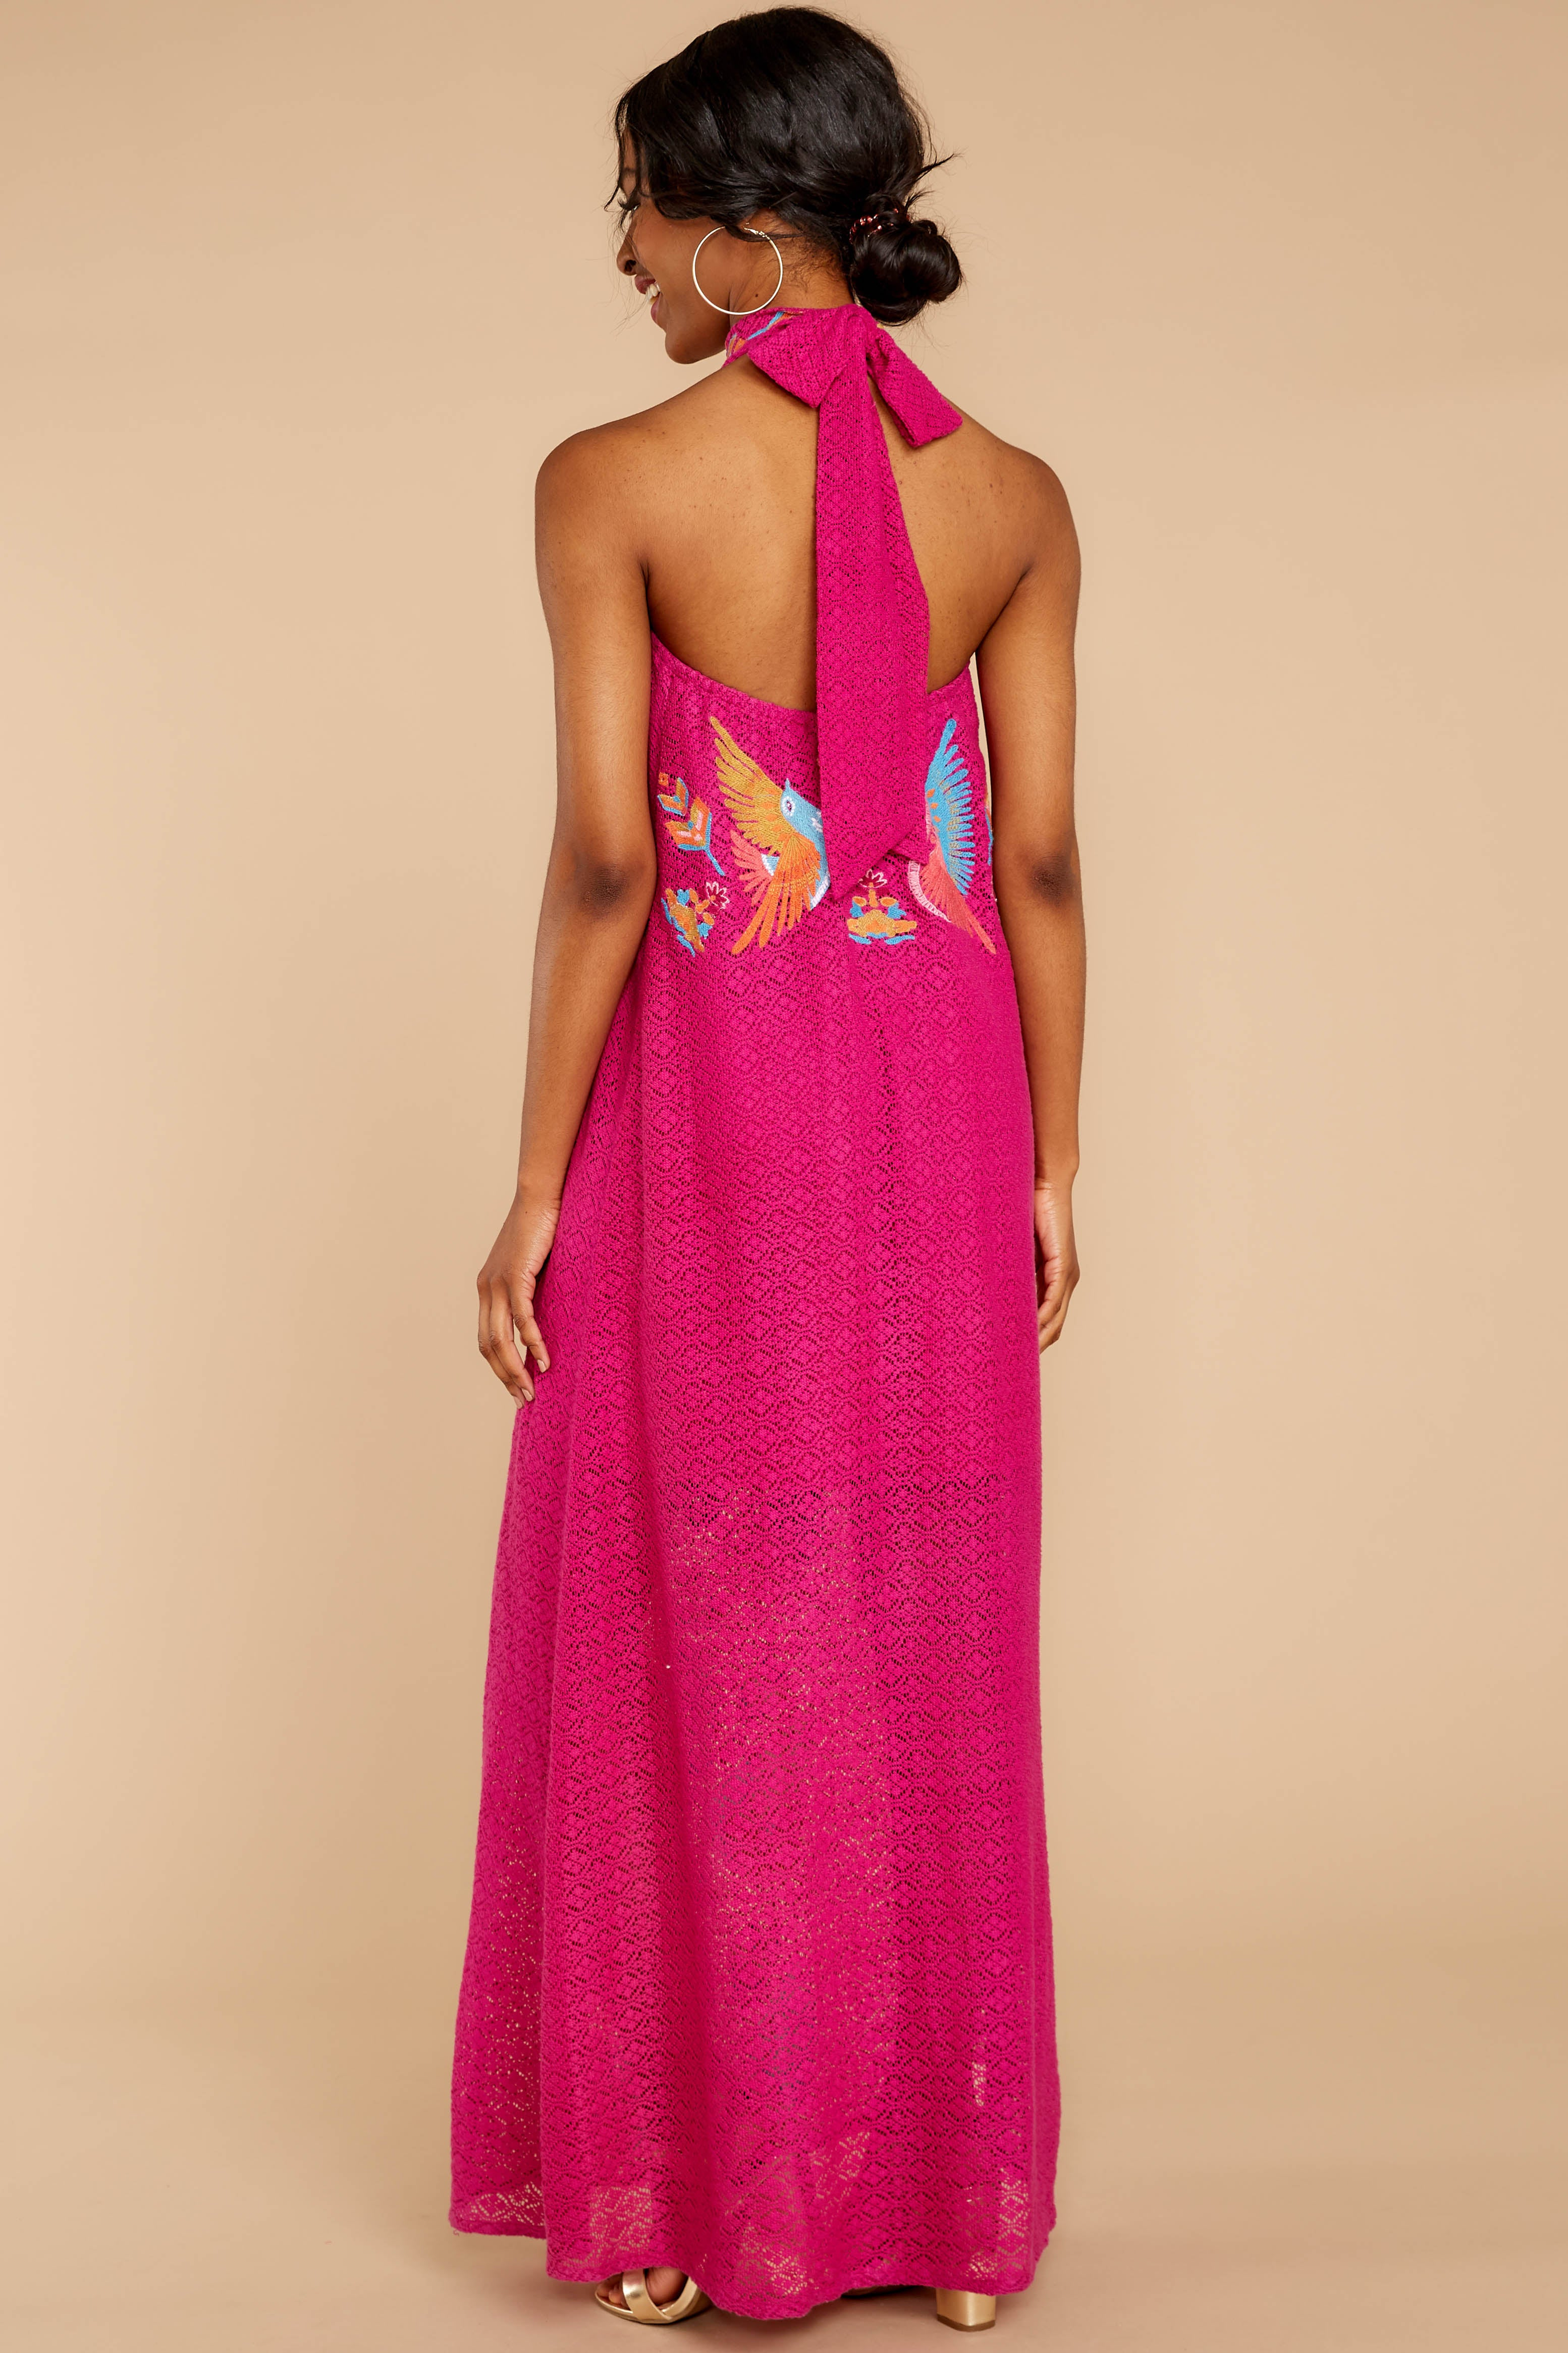 7 Flock To It Pink Embroidered Maxi Dress at reddressboutique.com